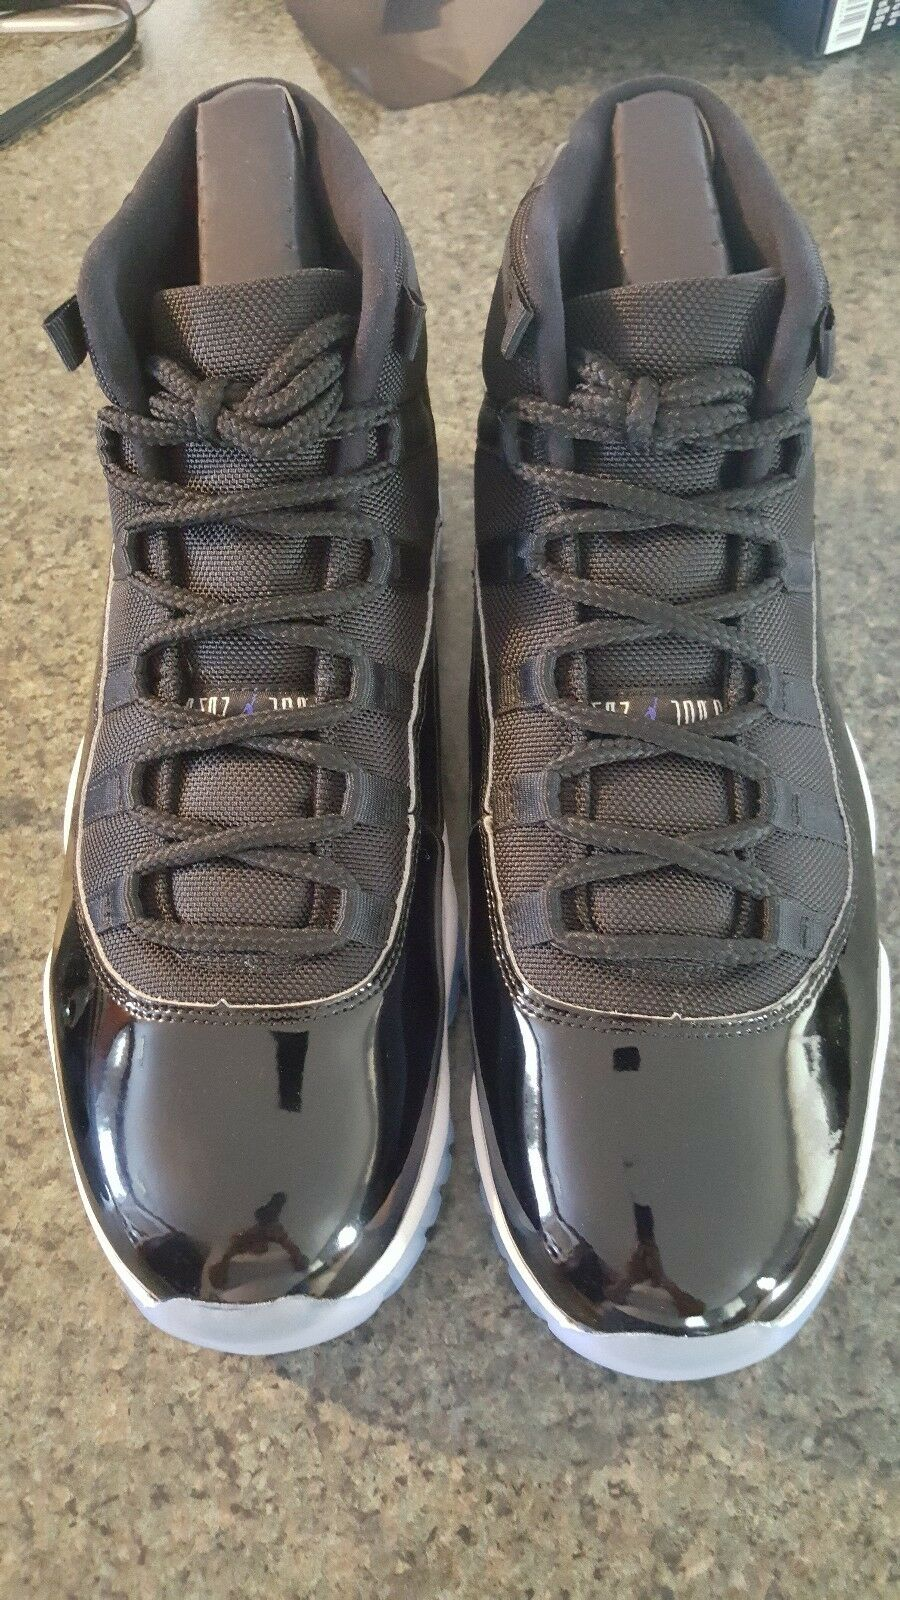 2016 Nike Air Jordan Retro XI 11 Space Jam size 12.5. 378037-003. black concord